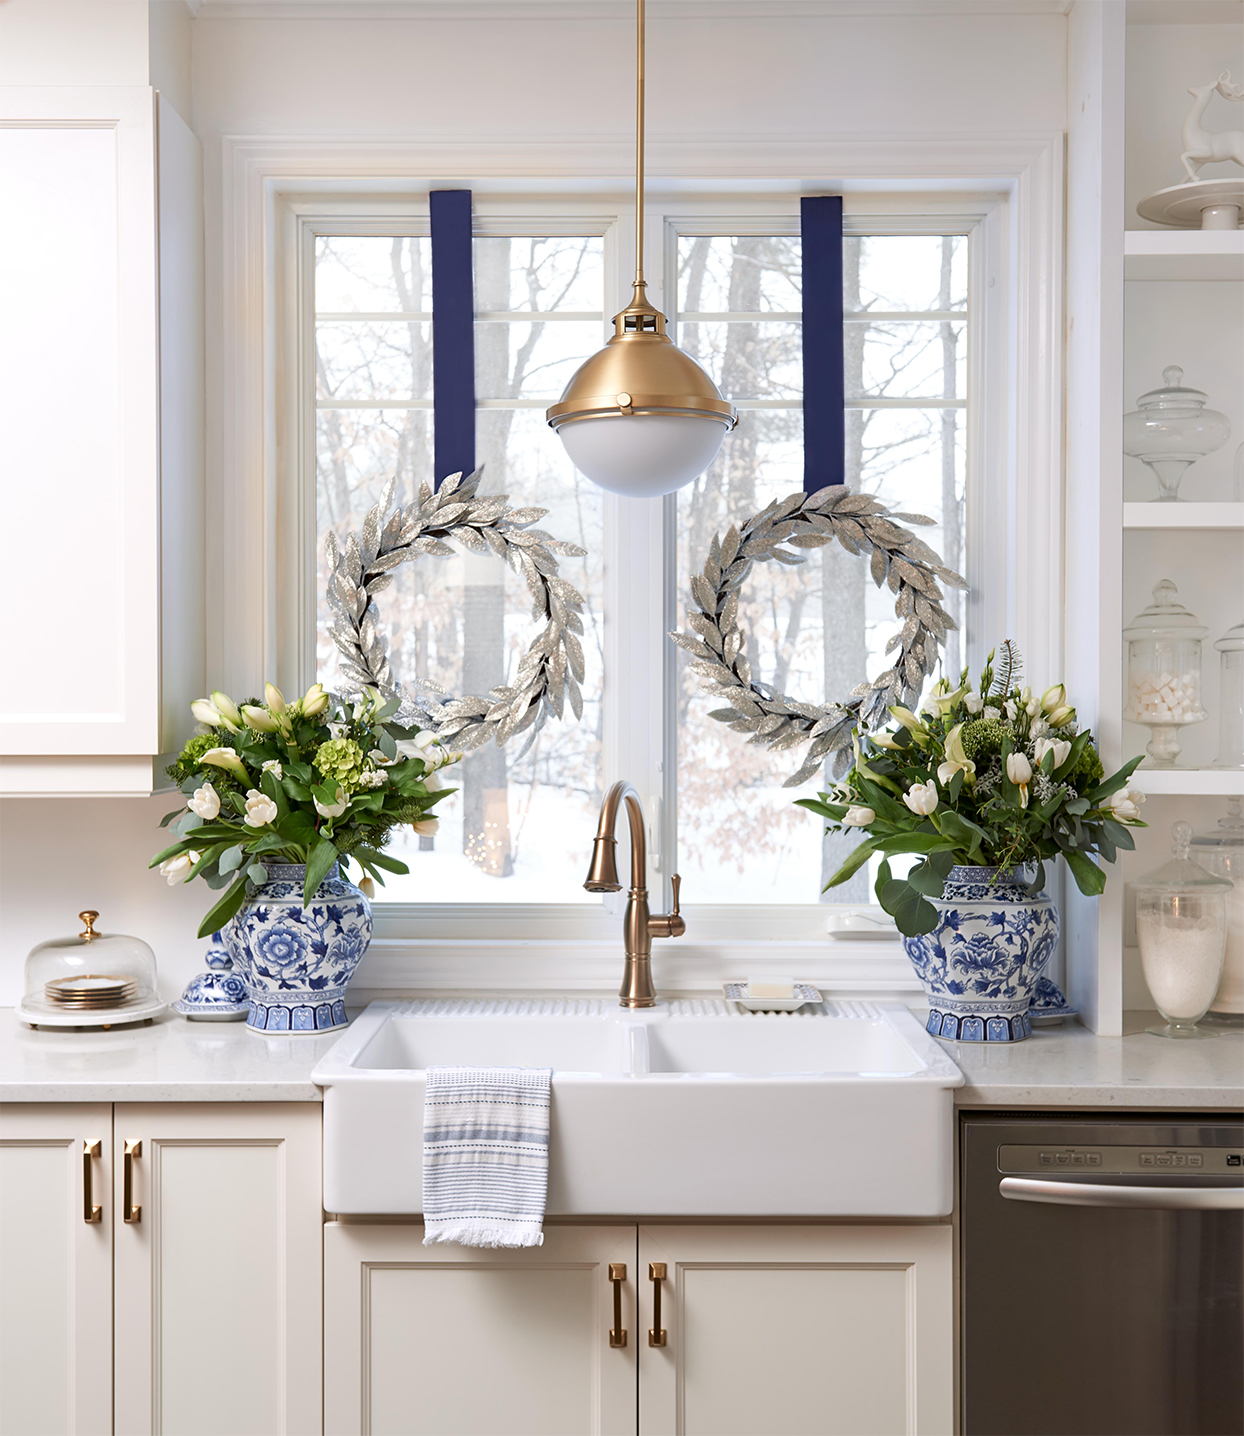 blue and silver wreaths hanging against window above white kitchen sink